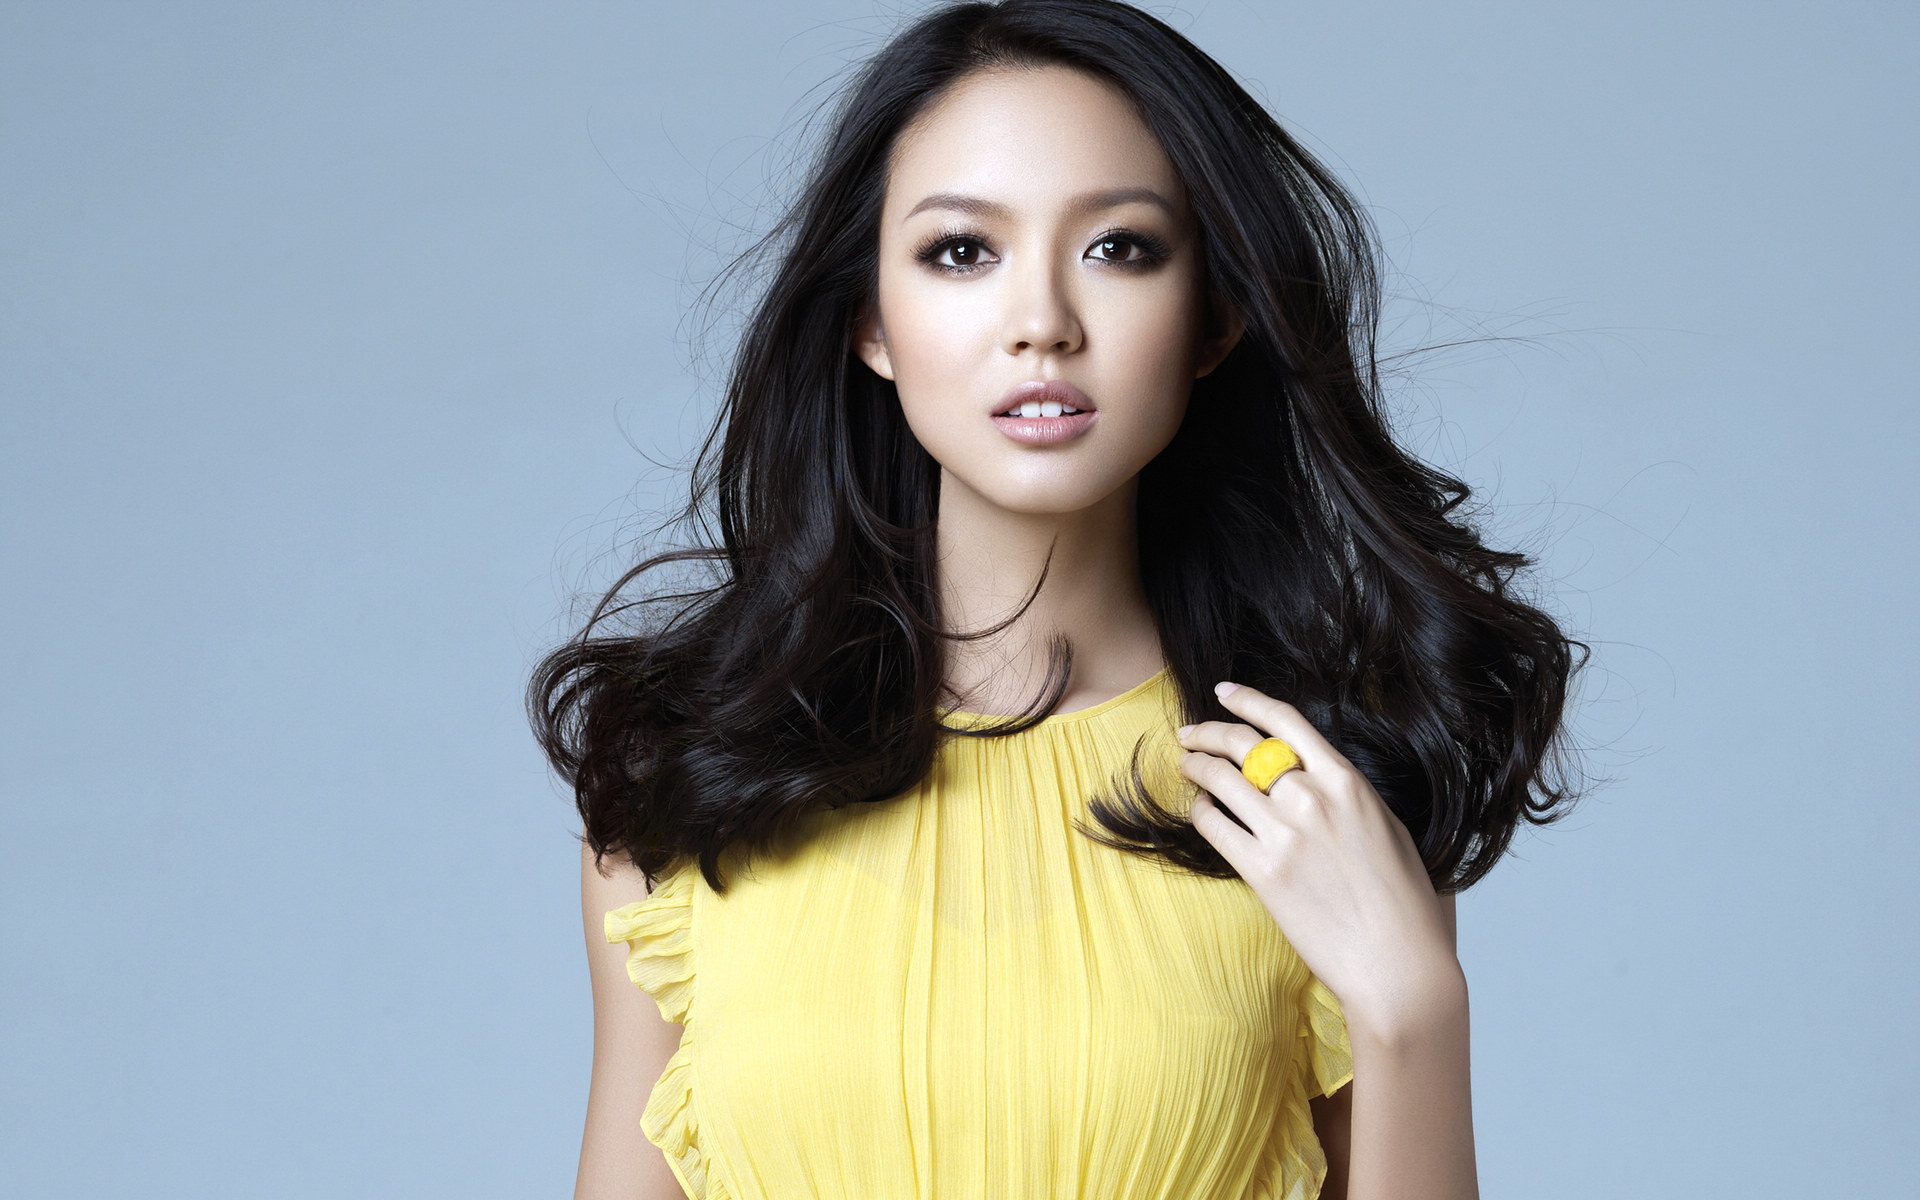 Zhang Zilin Wallpapers HD